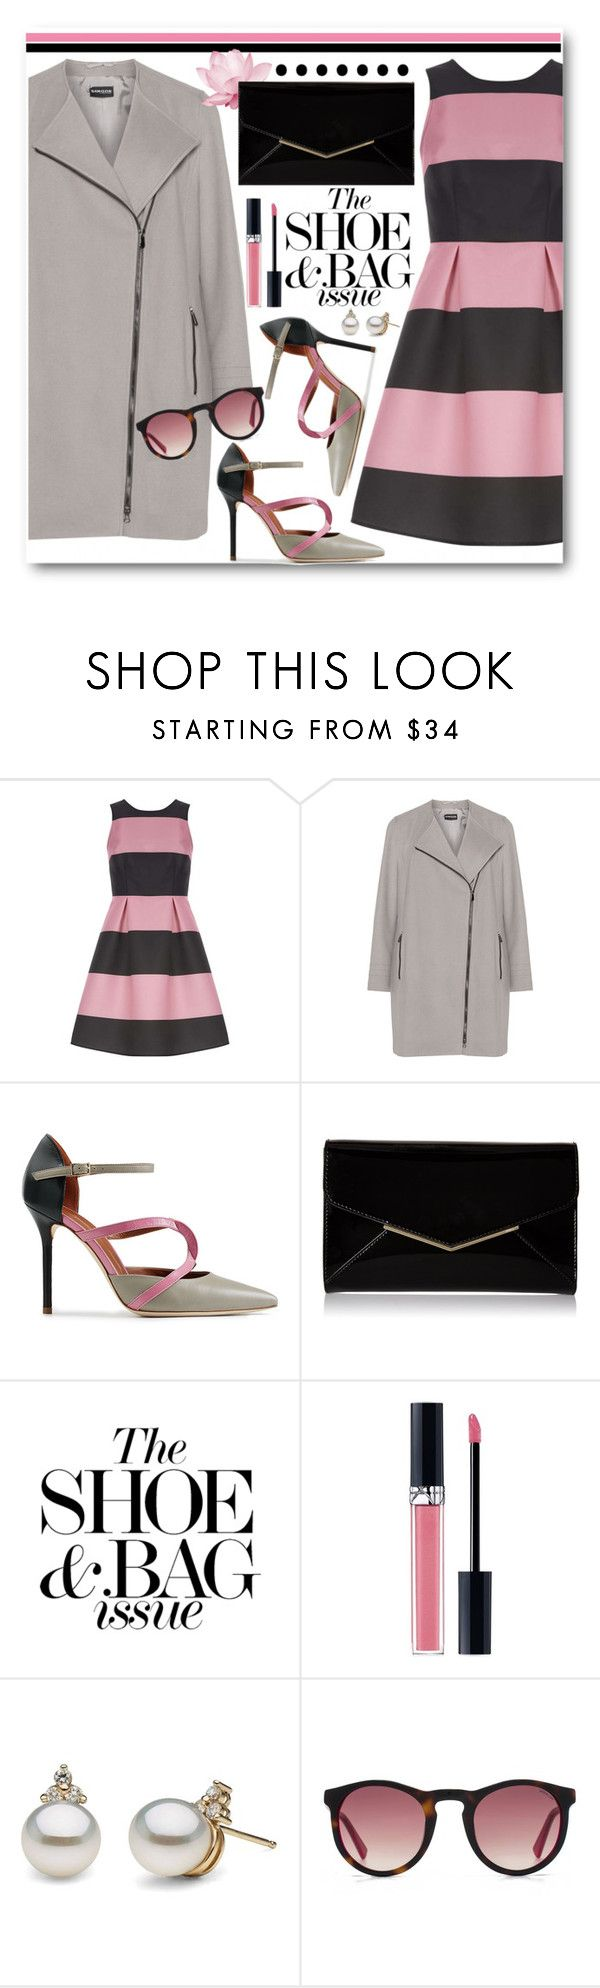 """Dorothy Perkins Pink and Black Dress"" by brendariley-1 ❤ liked on Polyvore featuring Luxe, Samoon, Malone Souliers, Furla, Christian Dior and HOOK LDN"